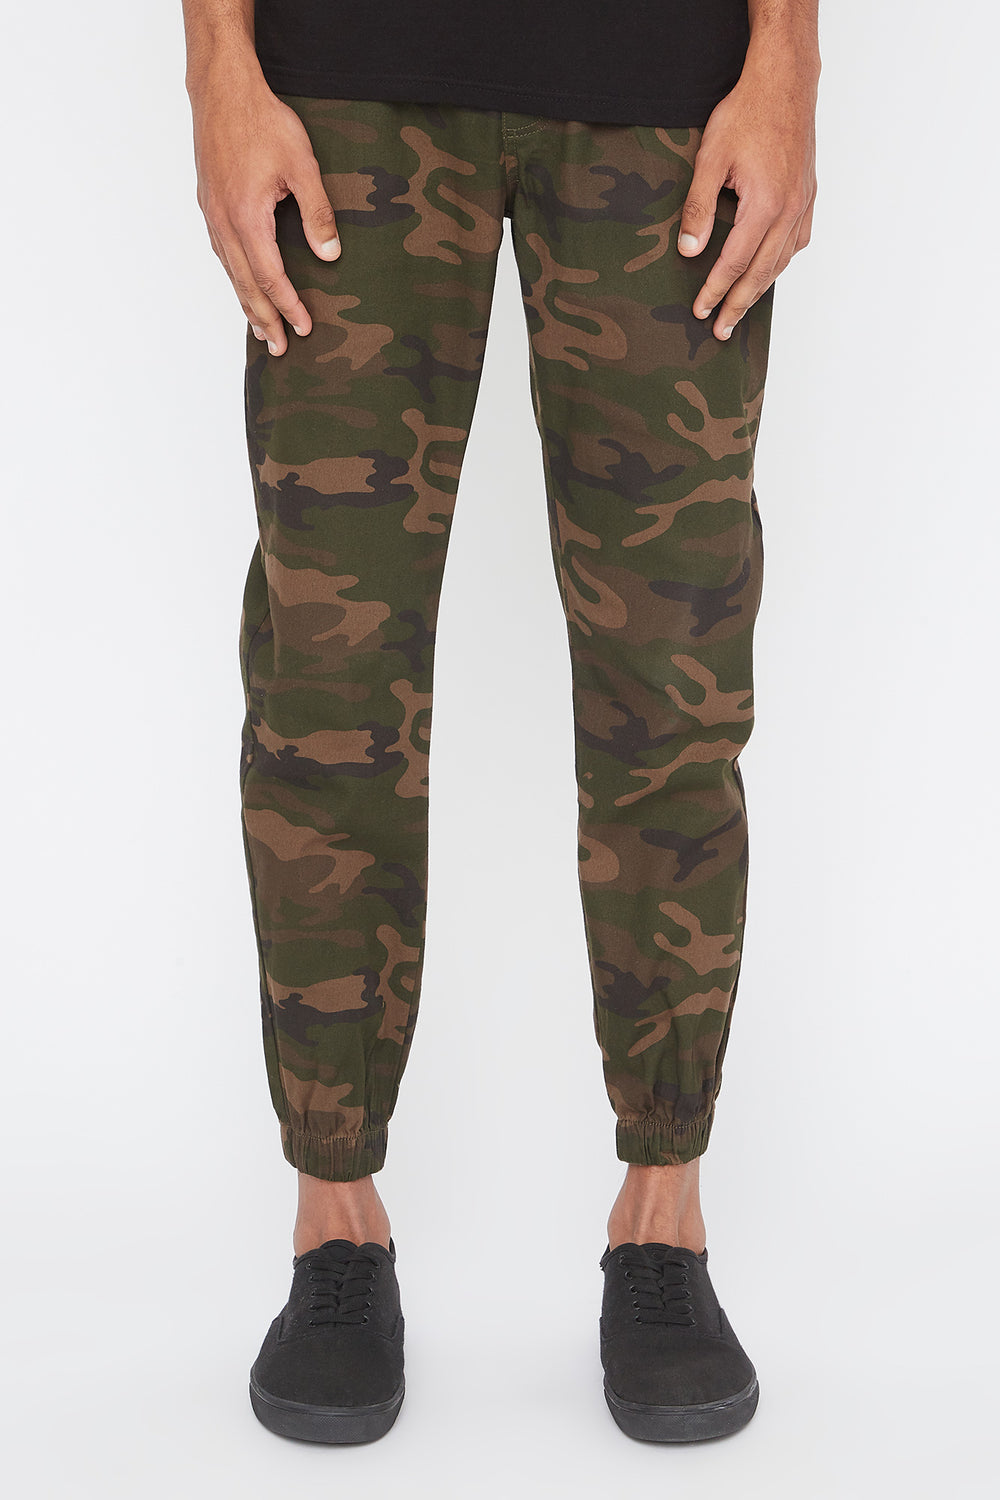 Joggers Camouflage West49 Homme Camoufle